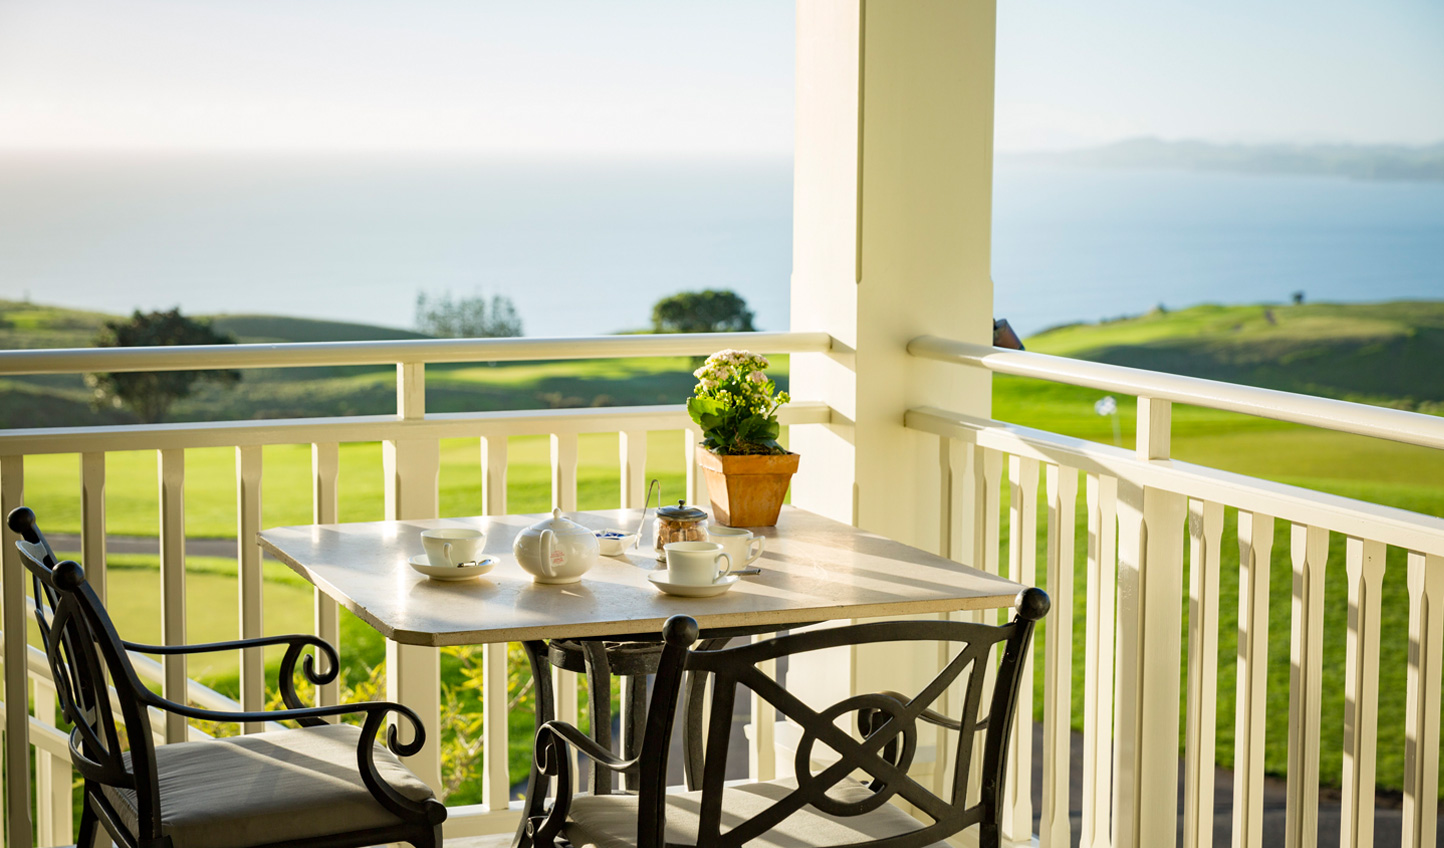 Take your morning coffee out to the porch and take in the ocean views